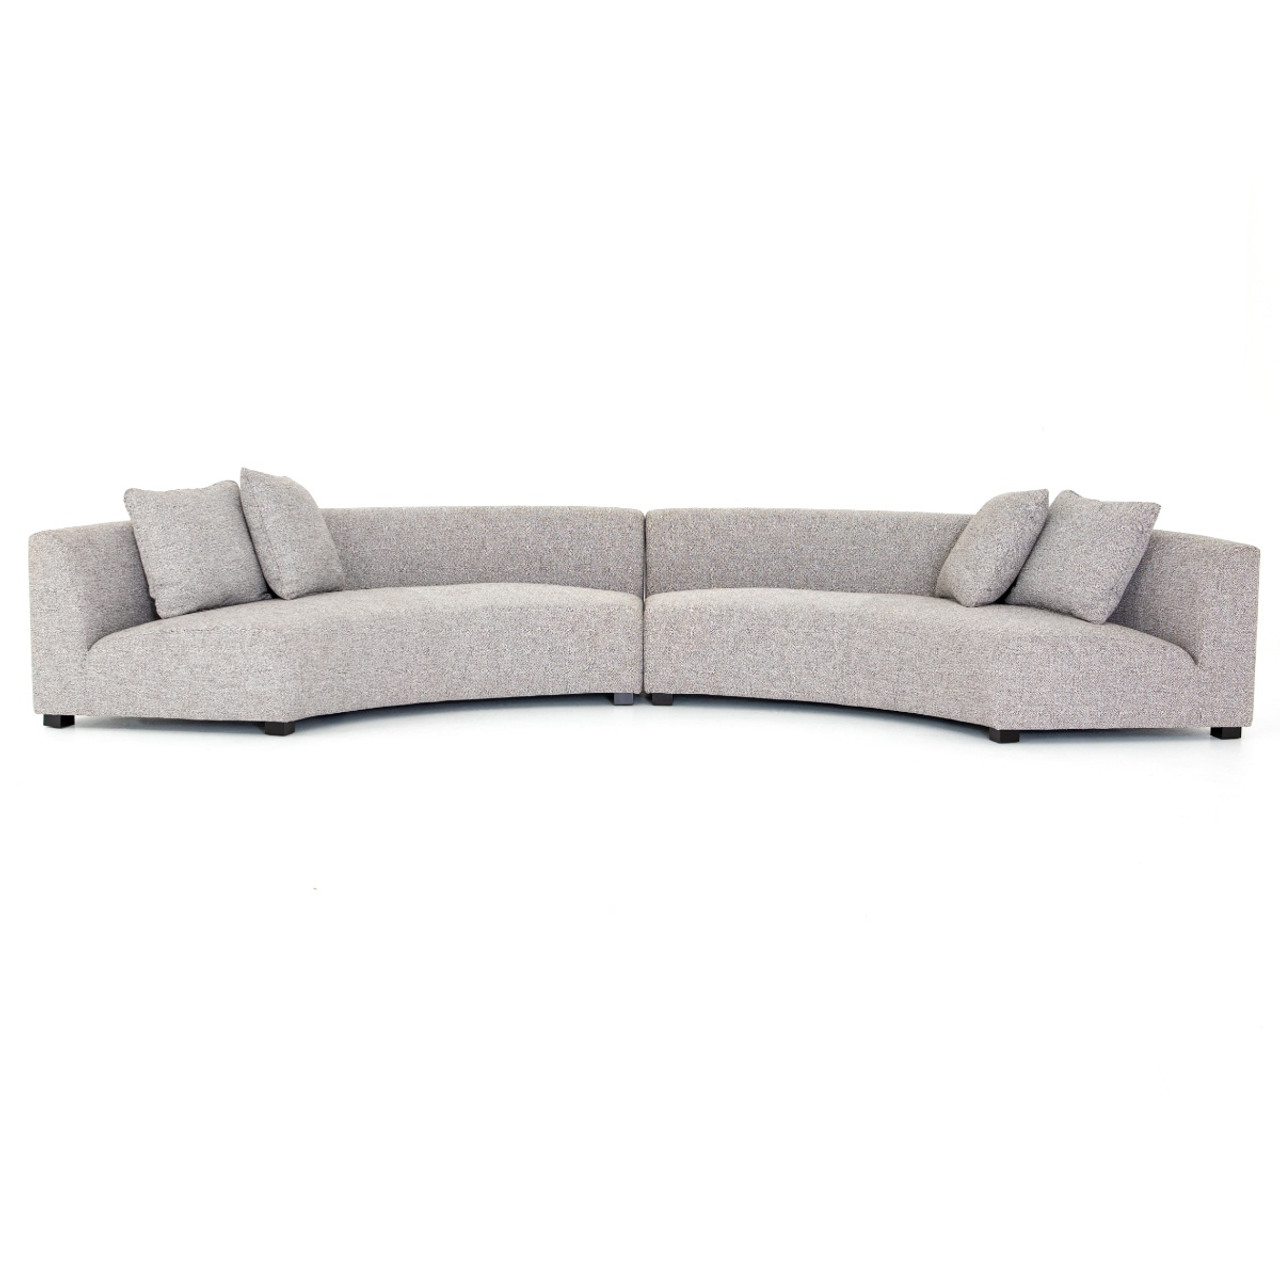 Curved Sofa Liam Modern Grey 2 Piece Curved Sectional Sofa